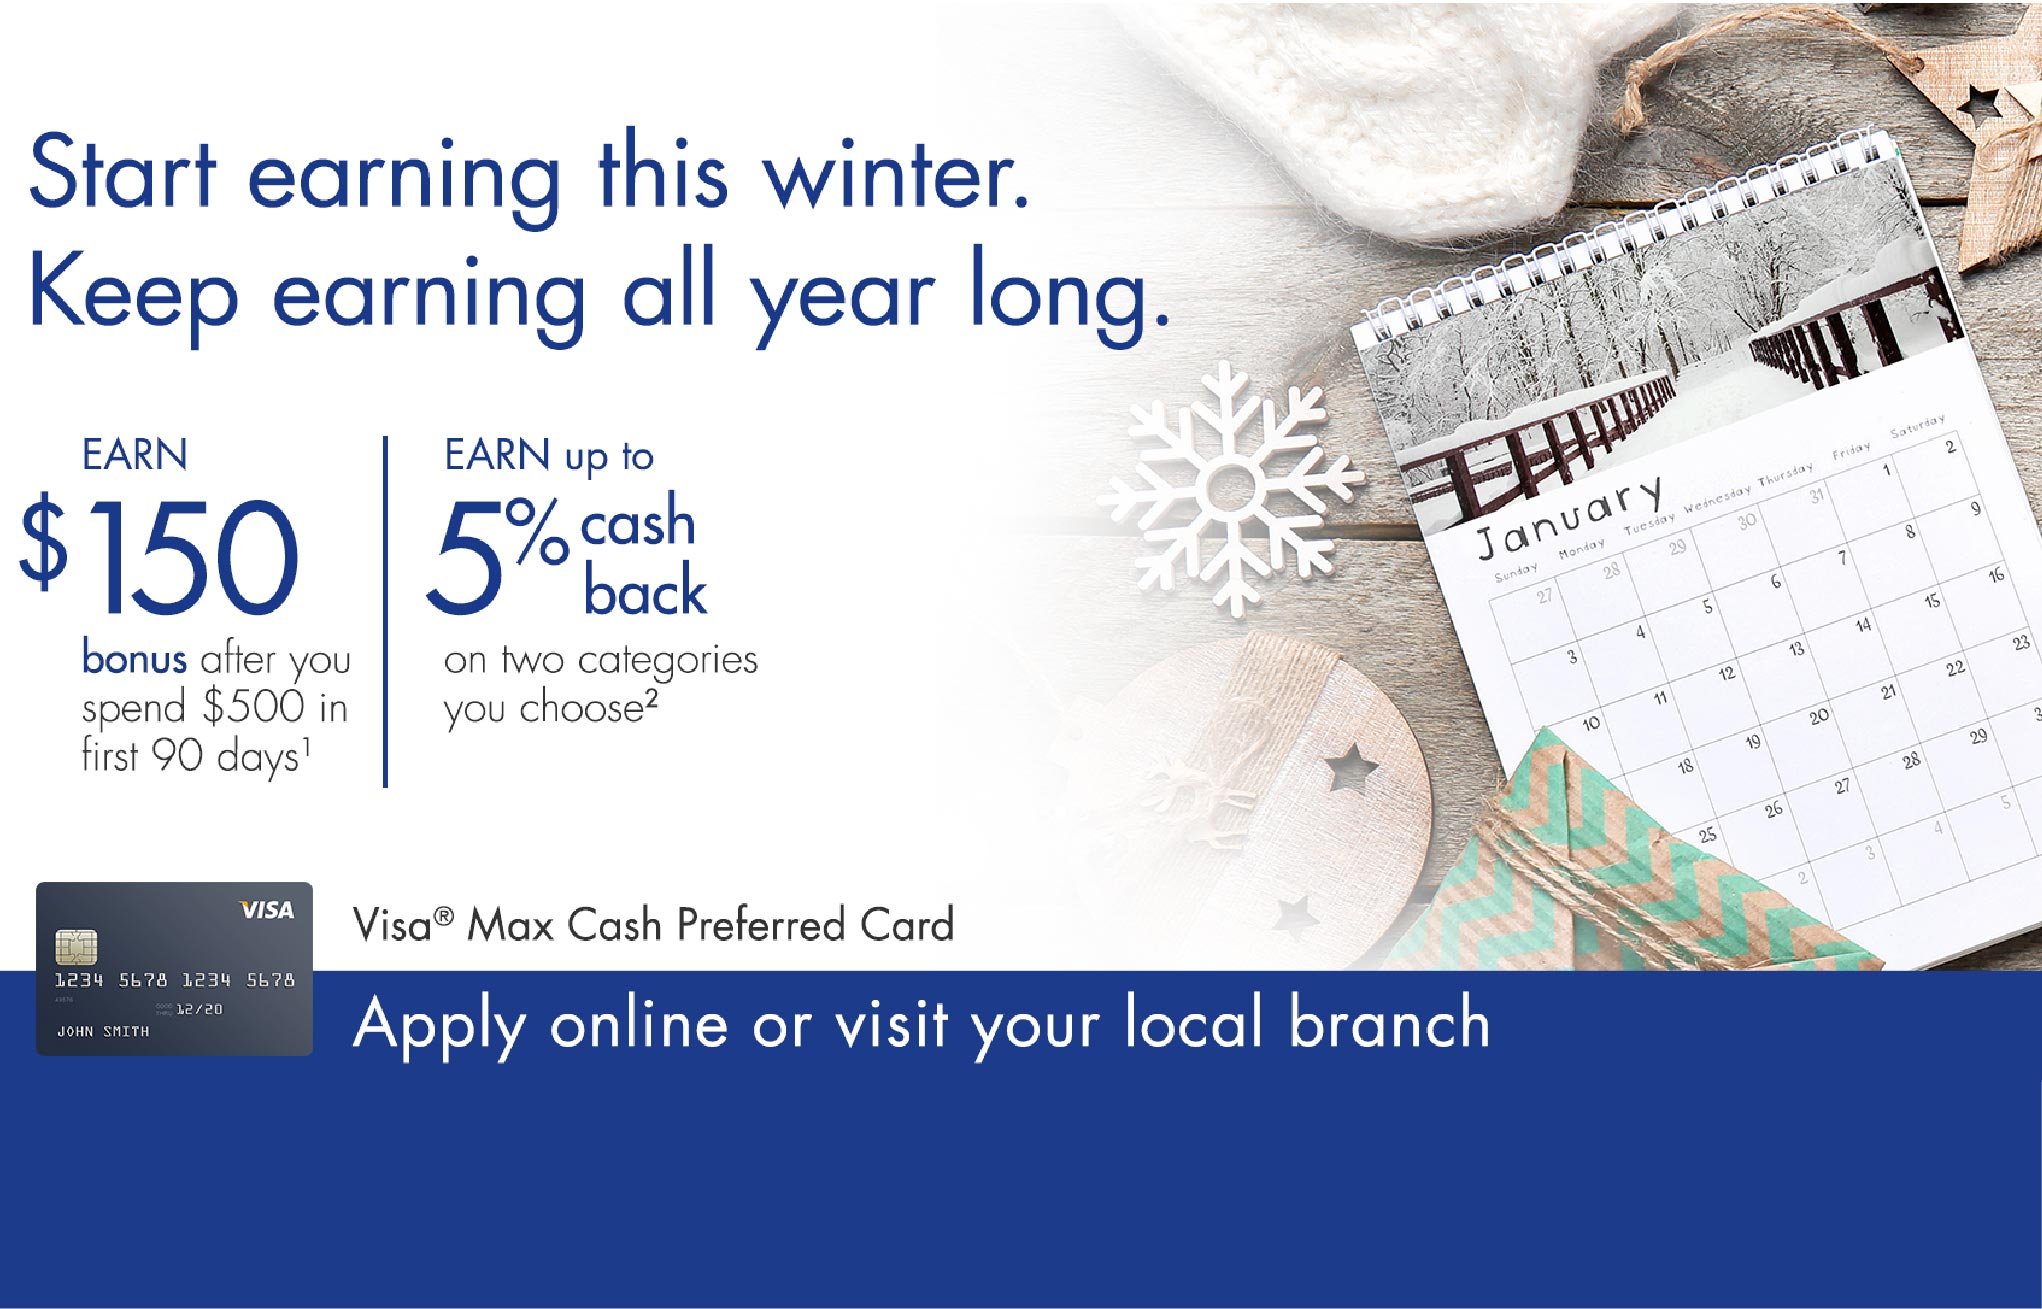 Credit Card Offer Winter 2021